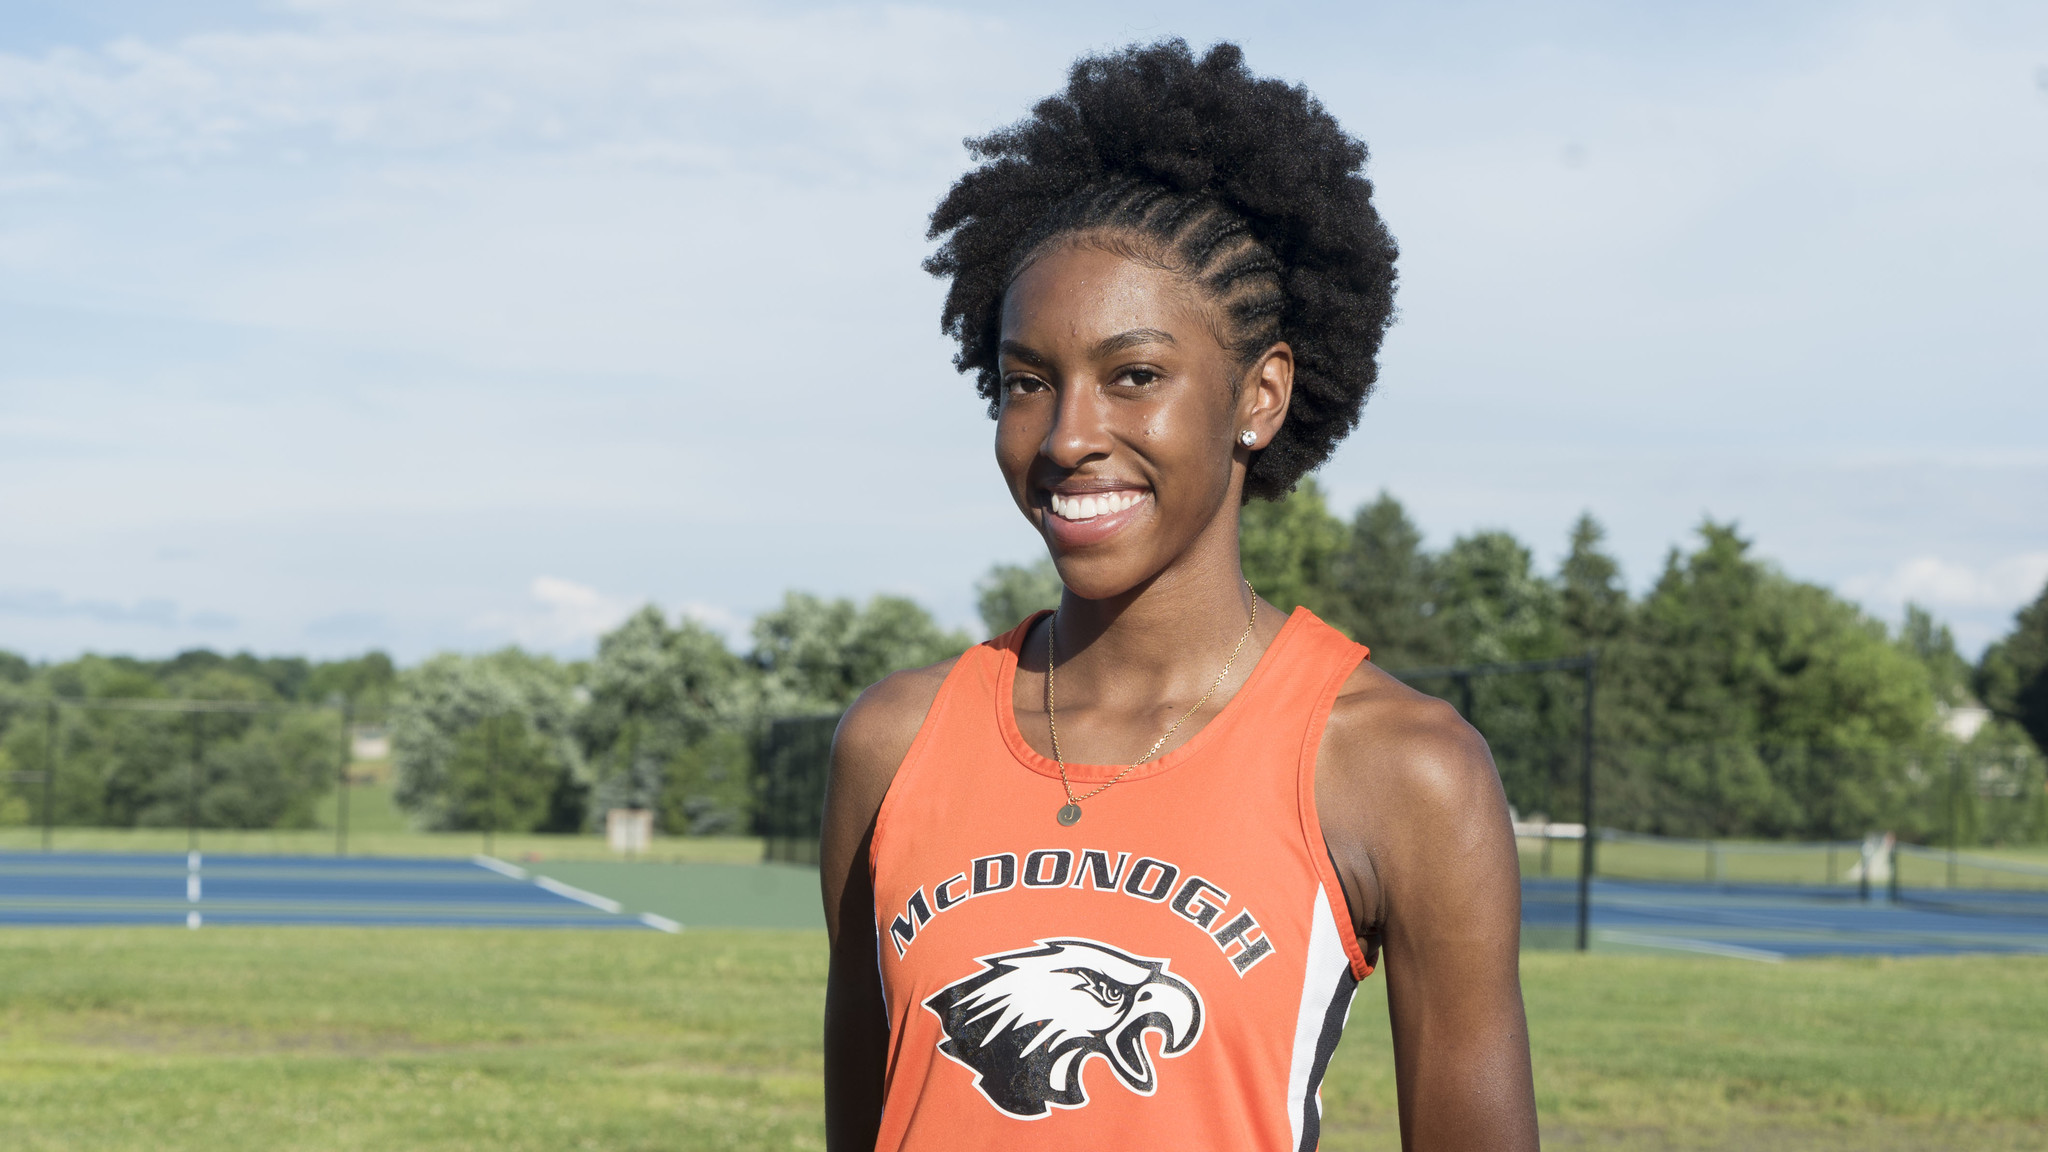 2018 All Metro Girls Outdoor Track And Field Performer And Coach Of